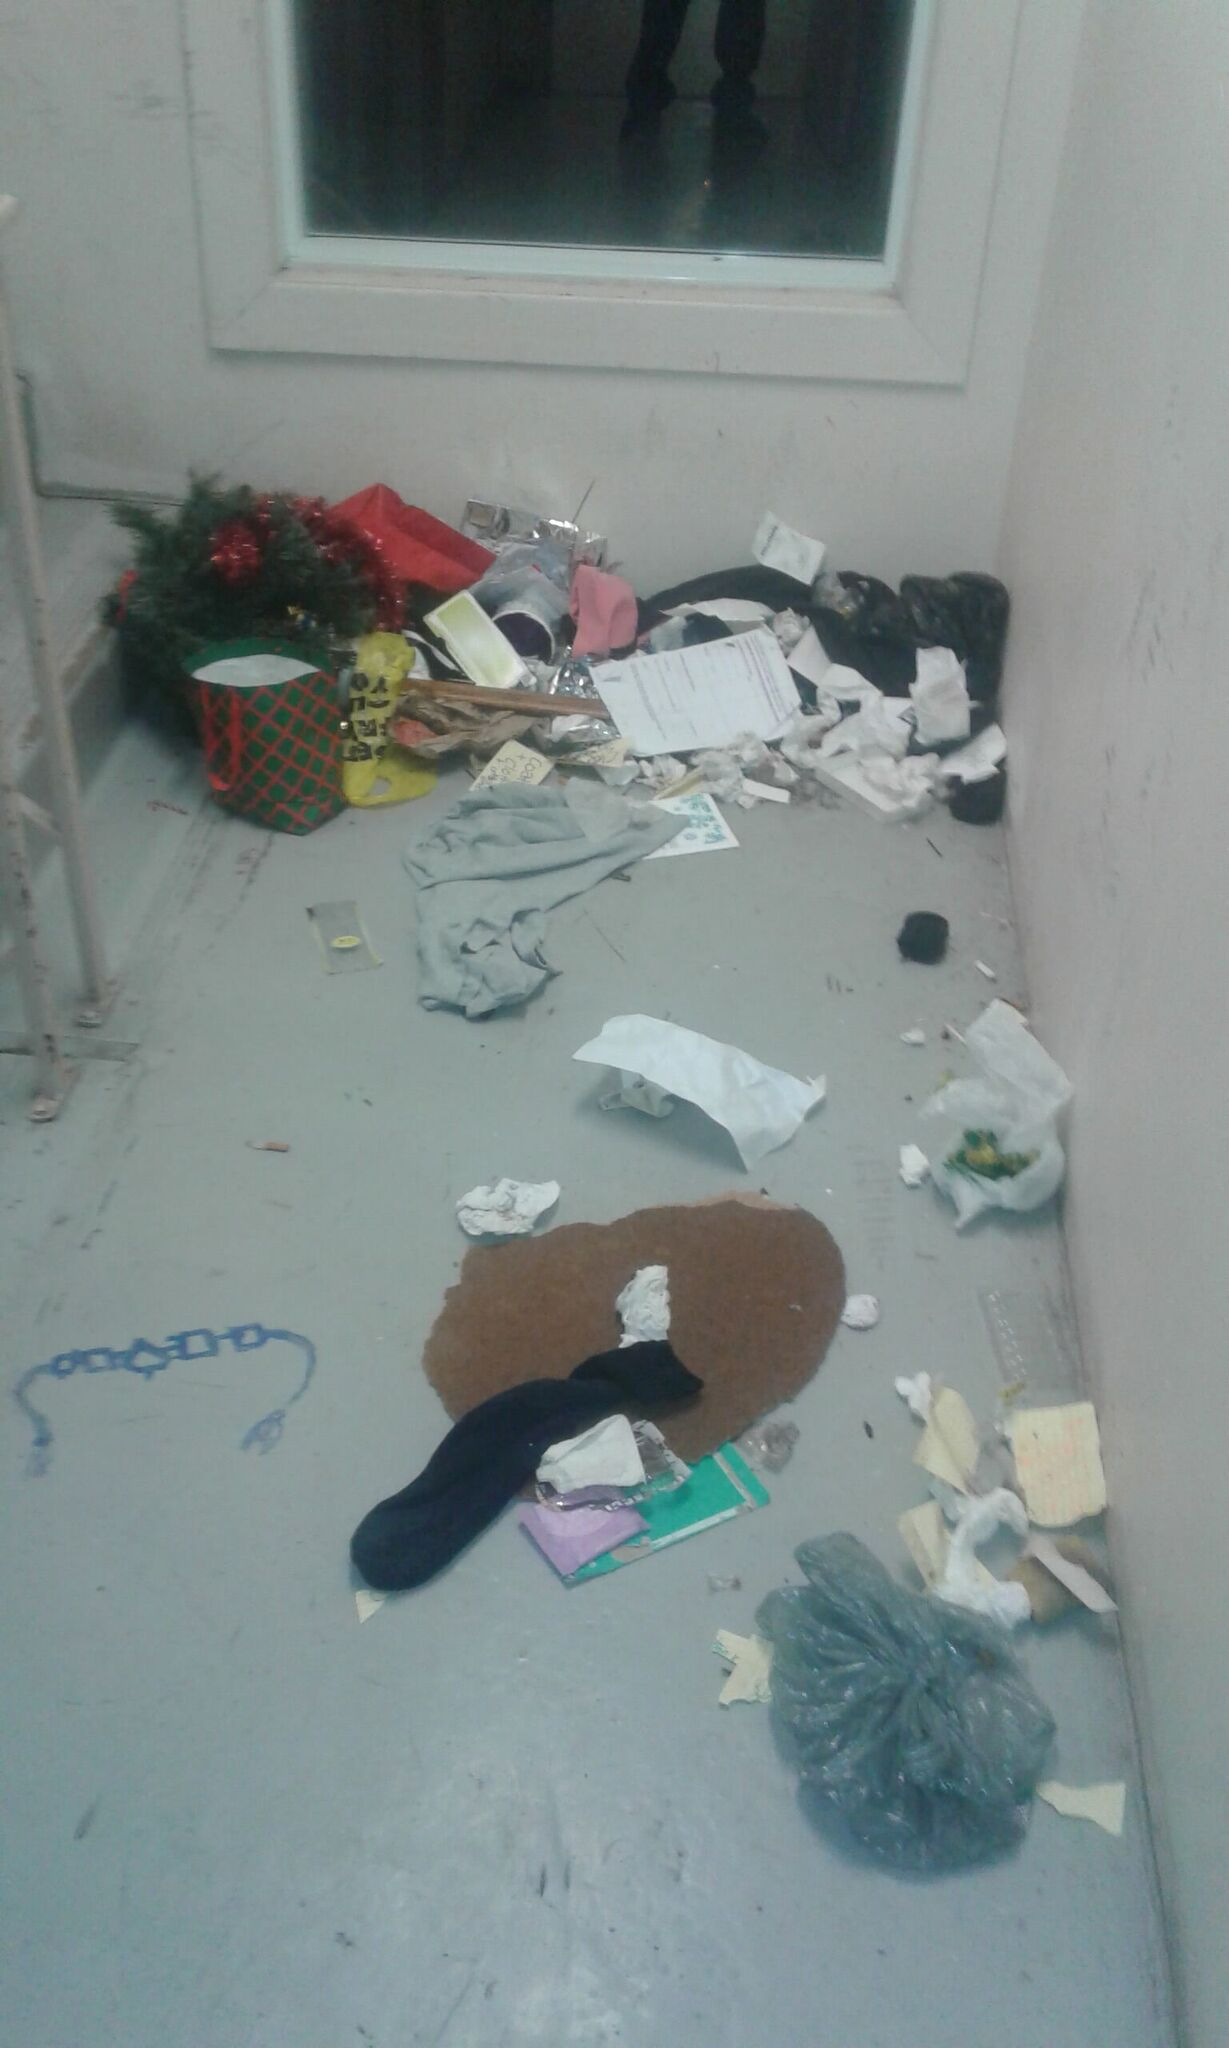 a hallway strewn with clothing and other items